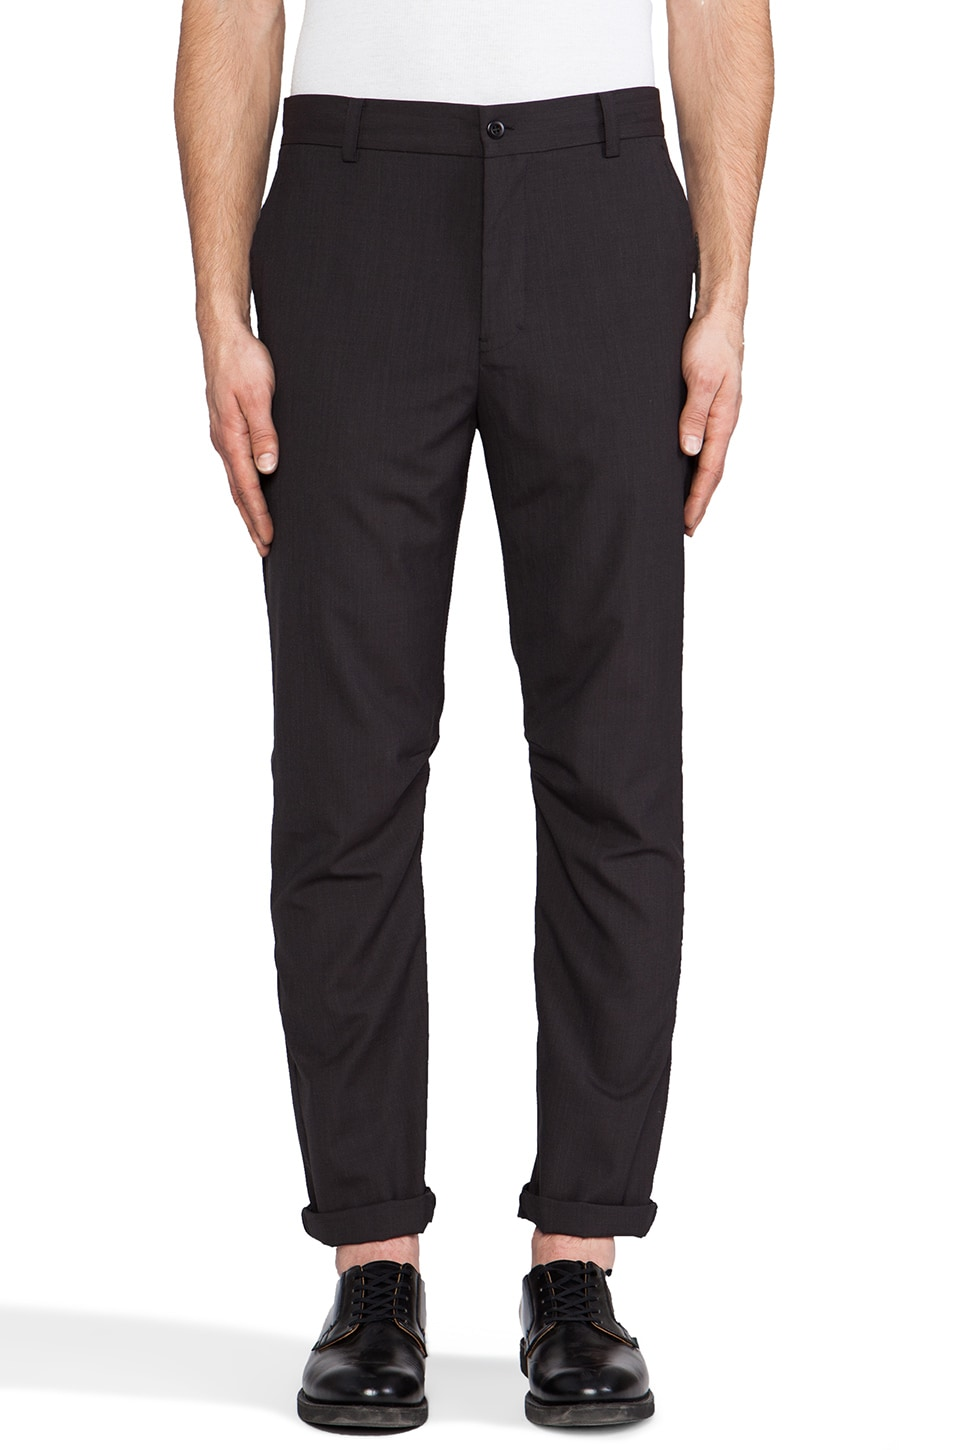 CHAPTER Rutha Pant in Charcoal